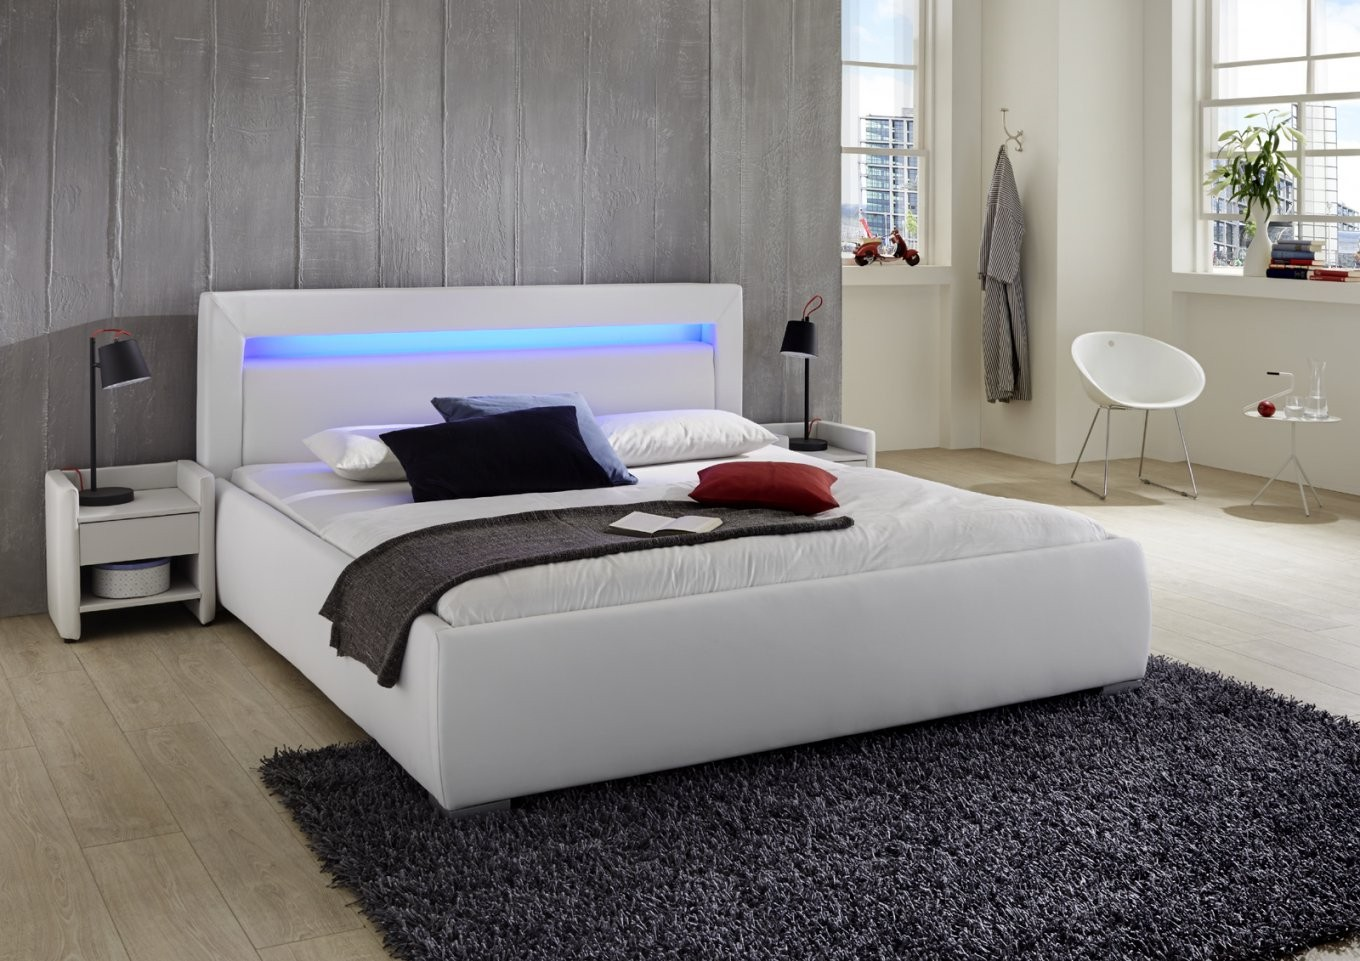 180X200 Mit Led Gallery Of Bett Mit Beleuchtung Led Bett Mit Led von Bett 140X200 Mit Led Bild